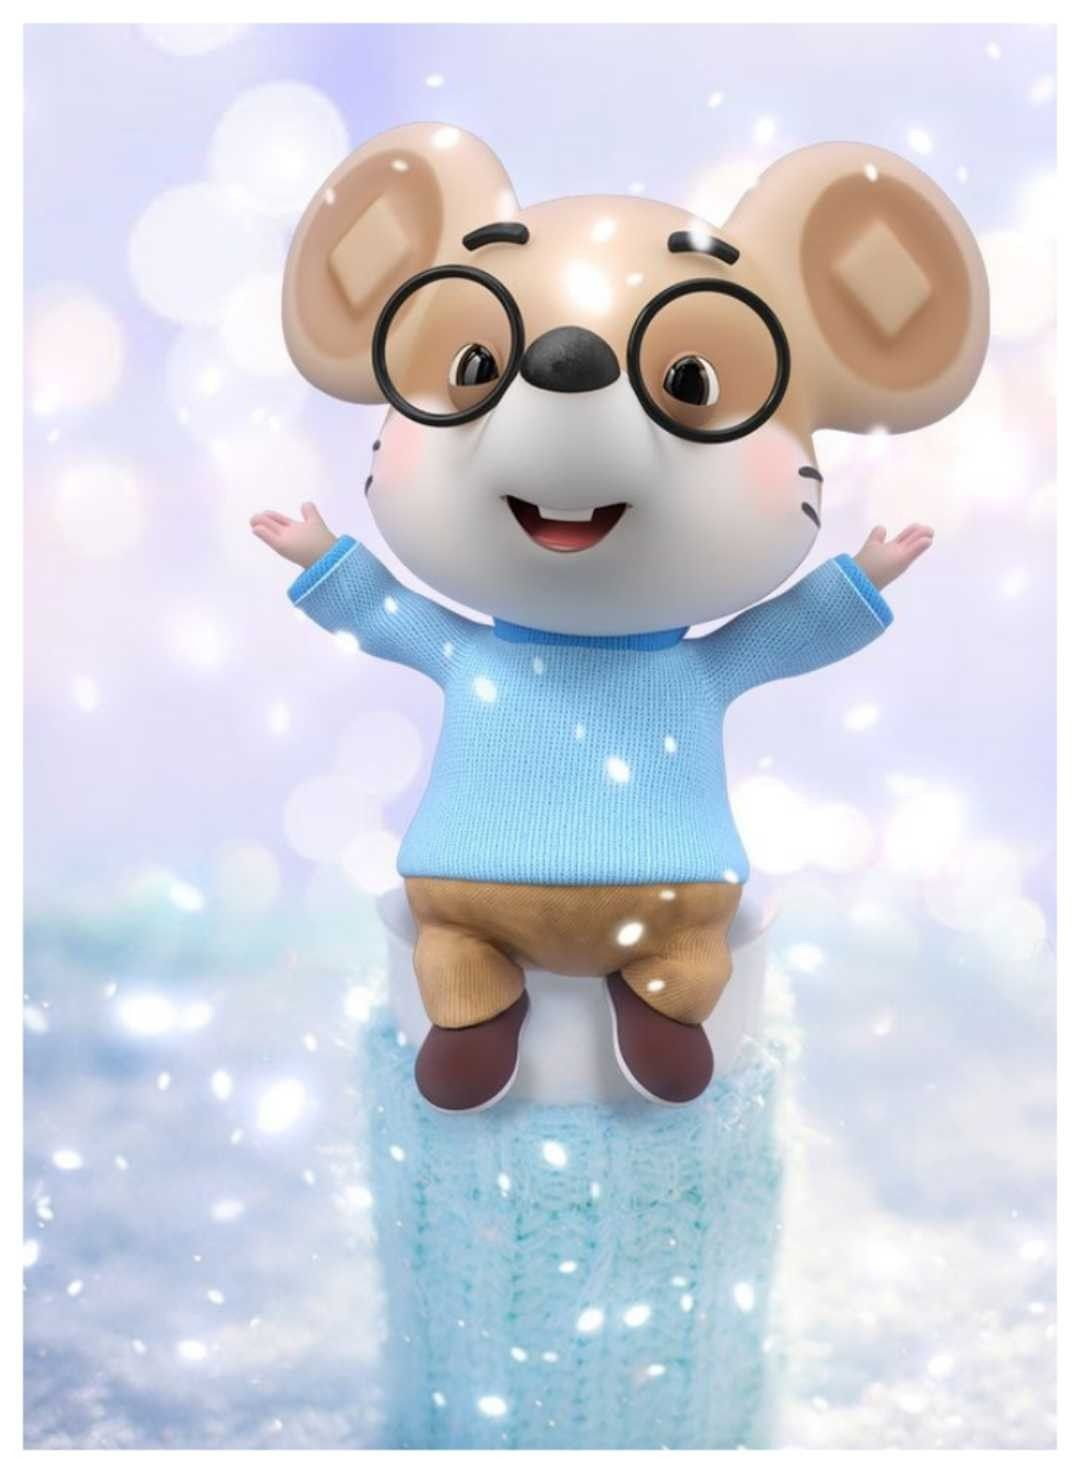 Pin by Bros PHea on Pig in 2020 | Cute mouse, Hello kitty, Pig